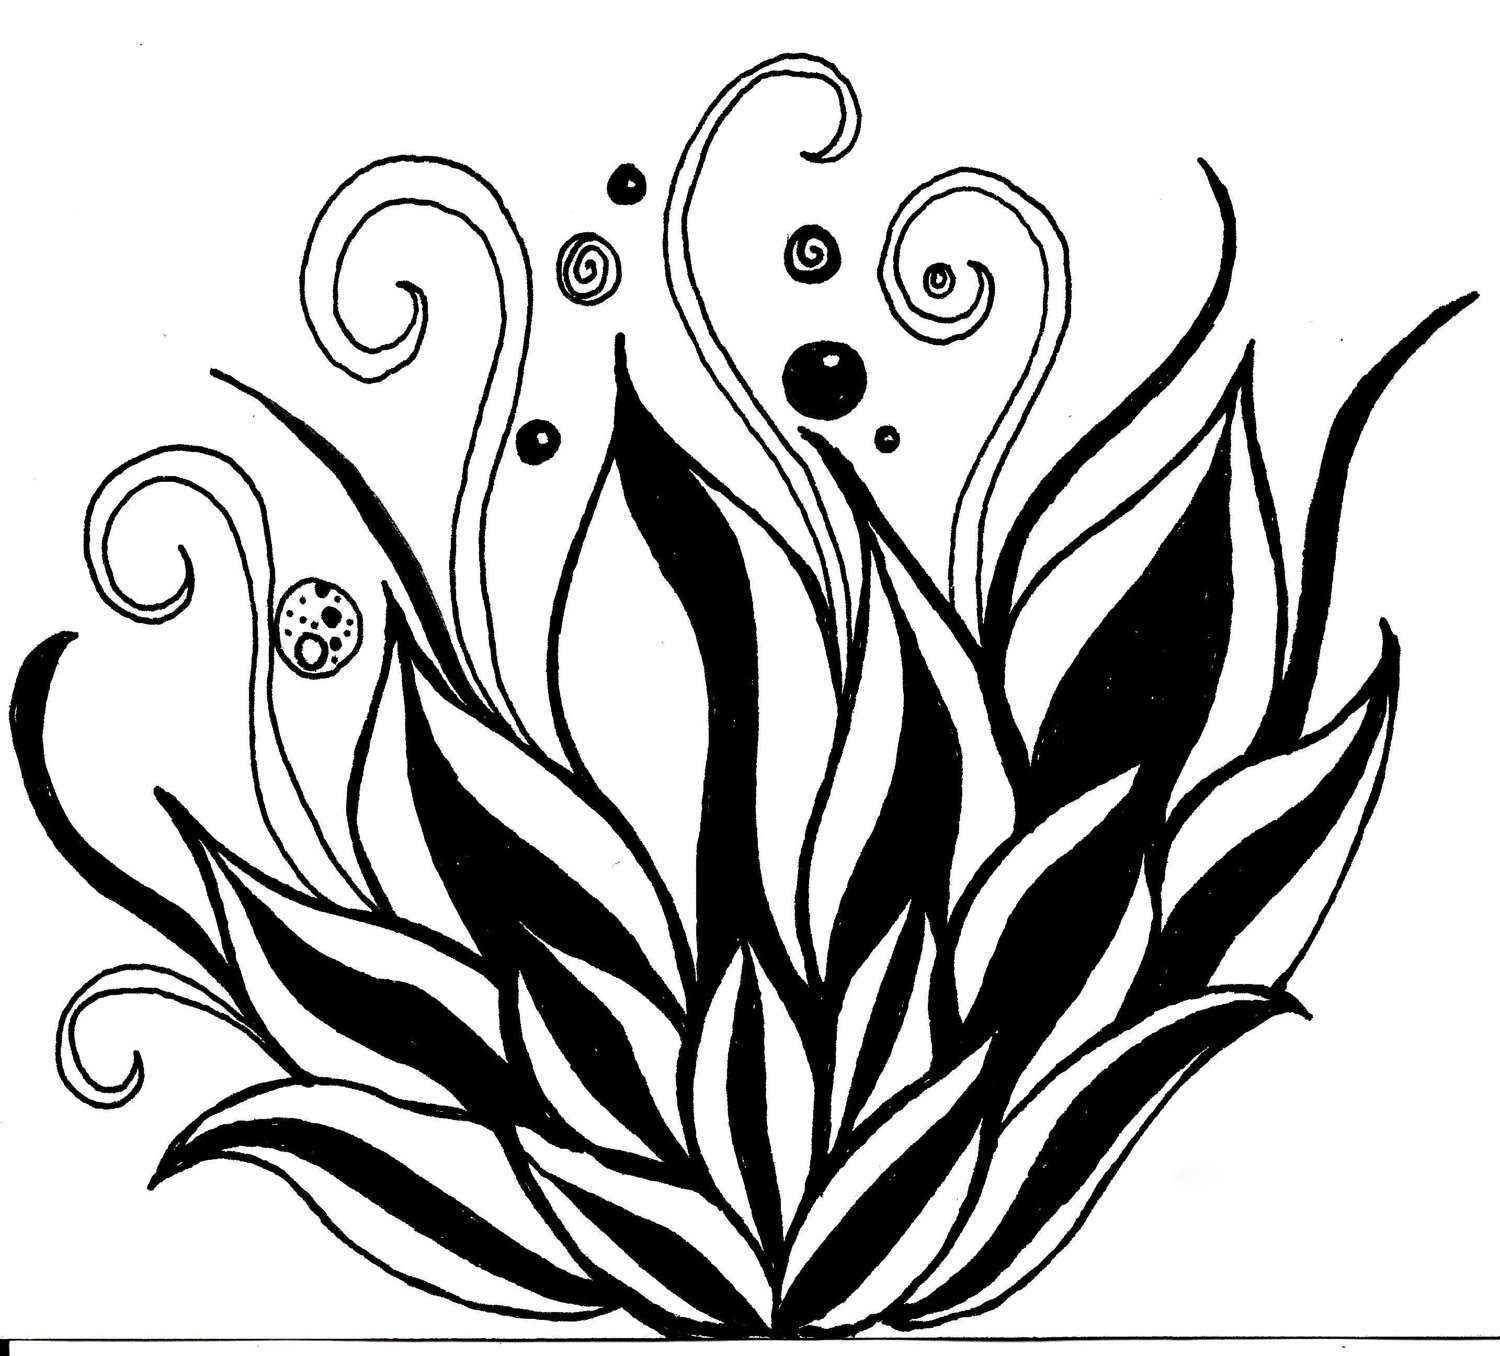 Flowers Drawing At Getdrawings Com Free For Personal Use Flowers